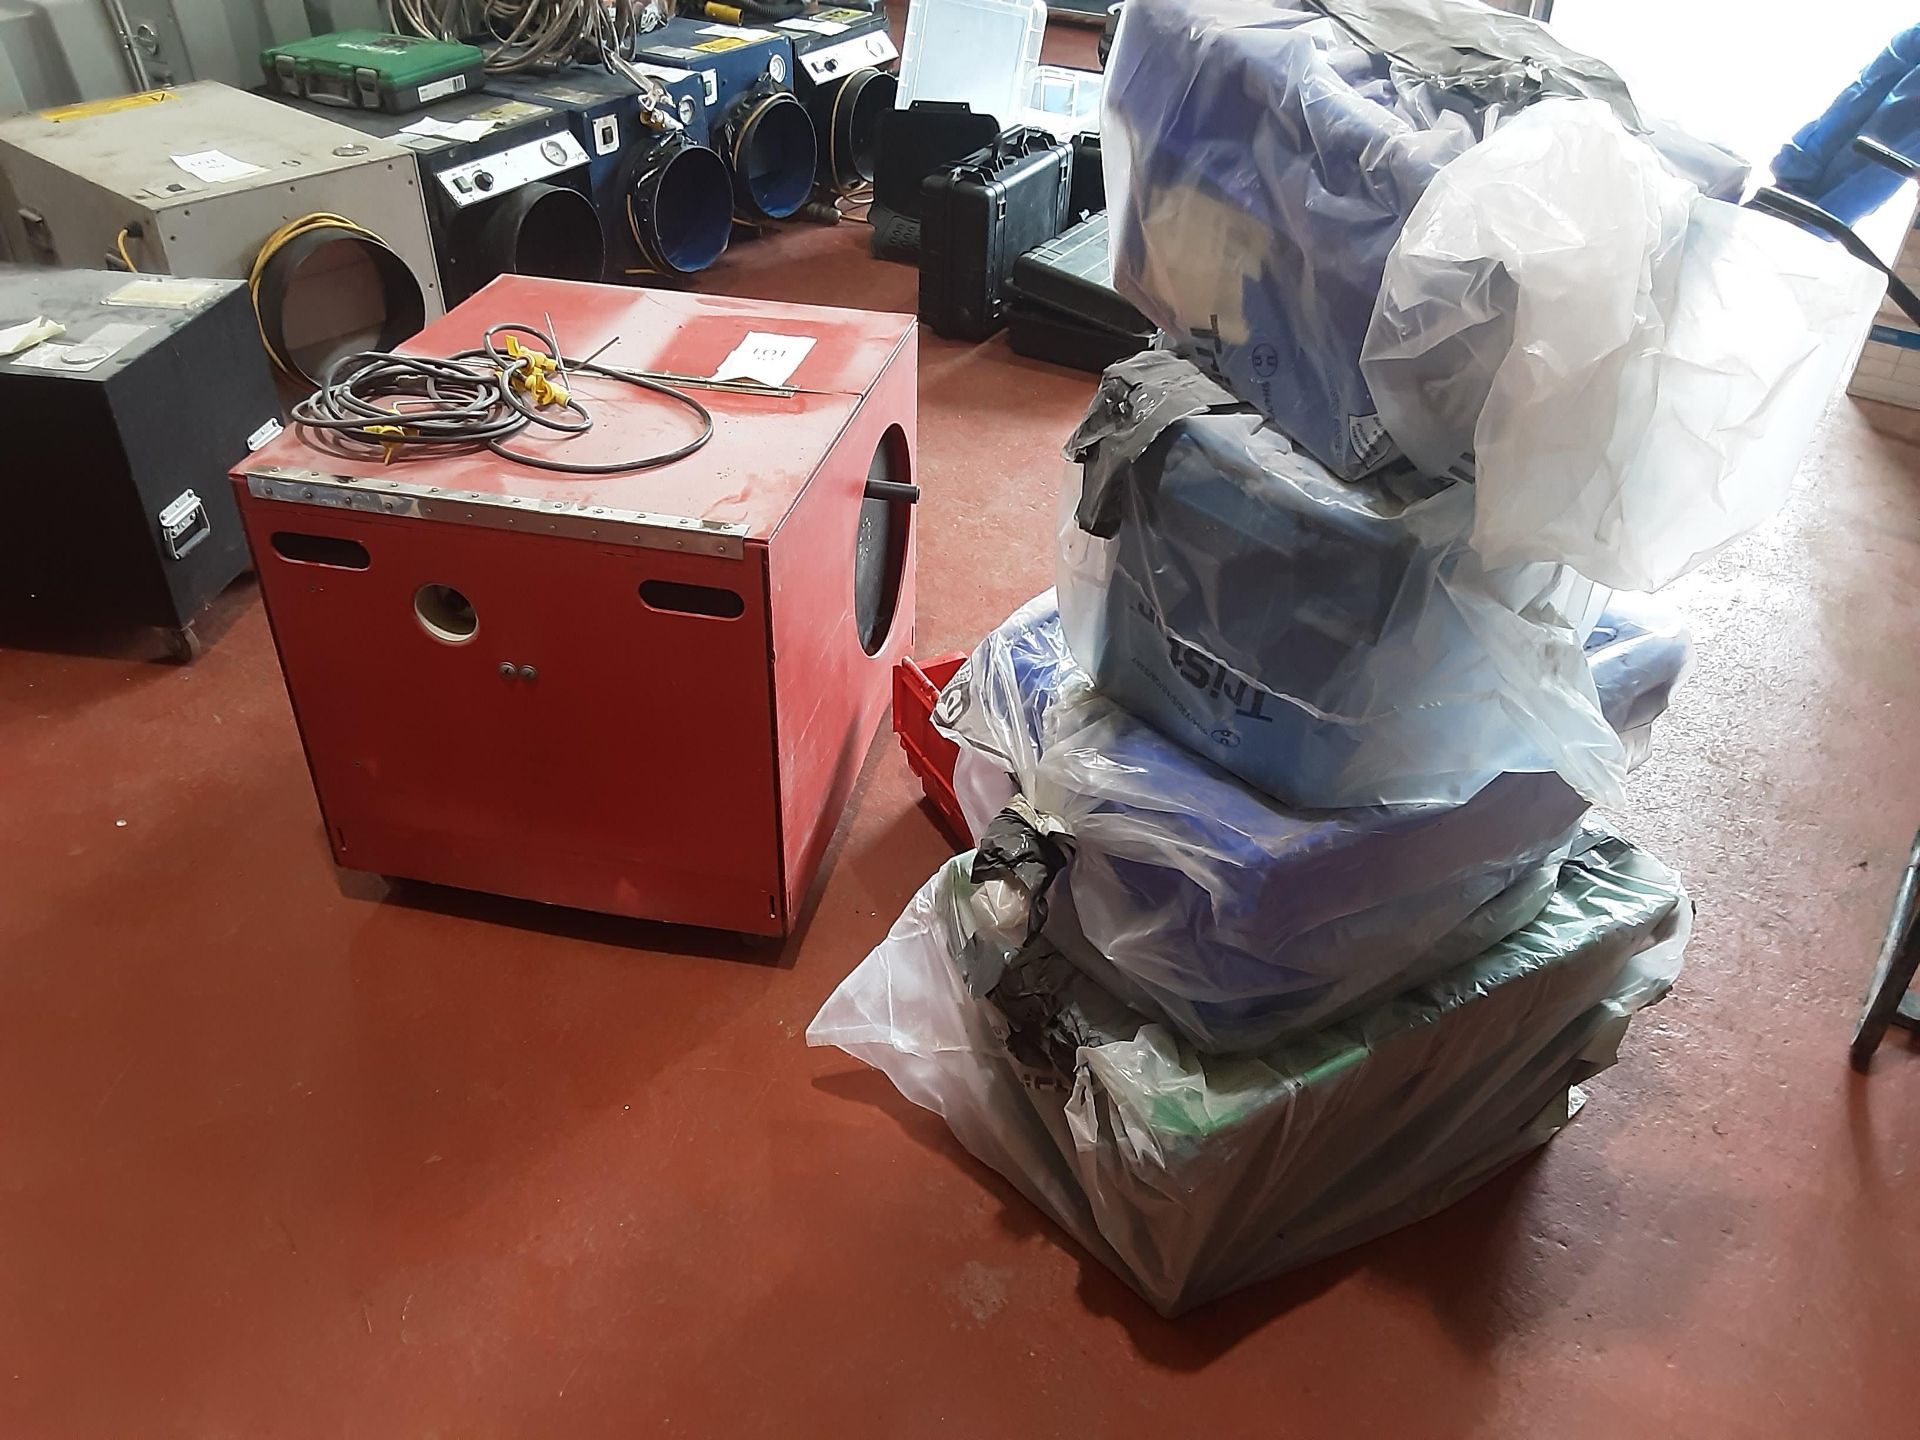 The Red Box Water Injection Machine & Accessories, Serial No. 6062, (2014)